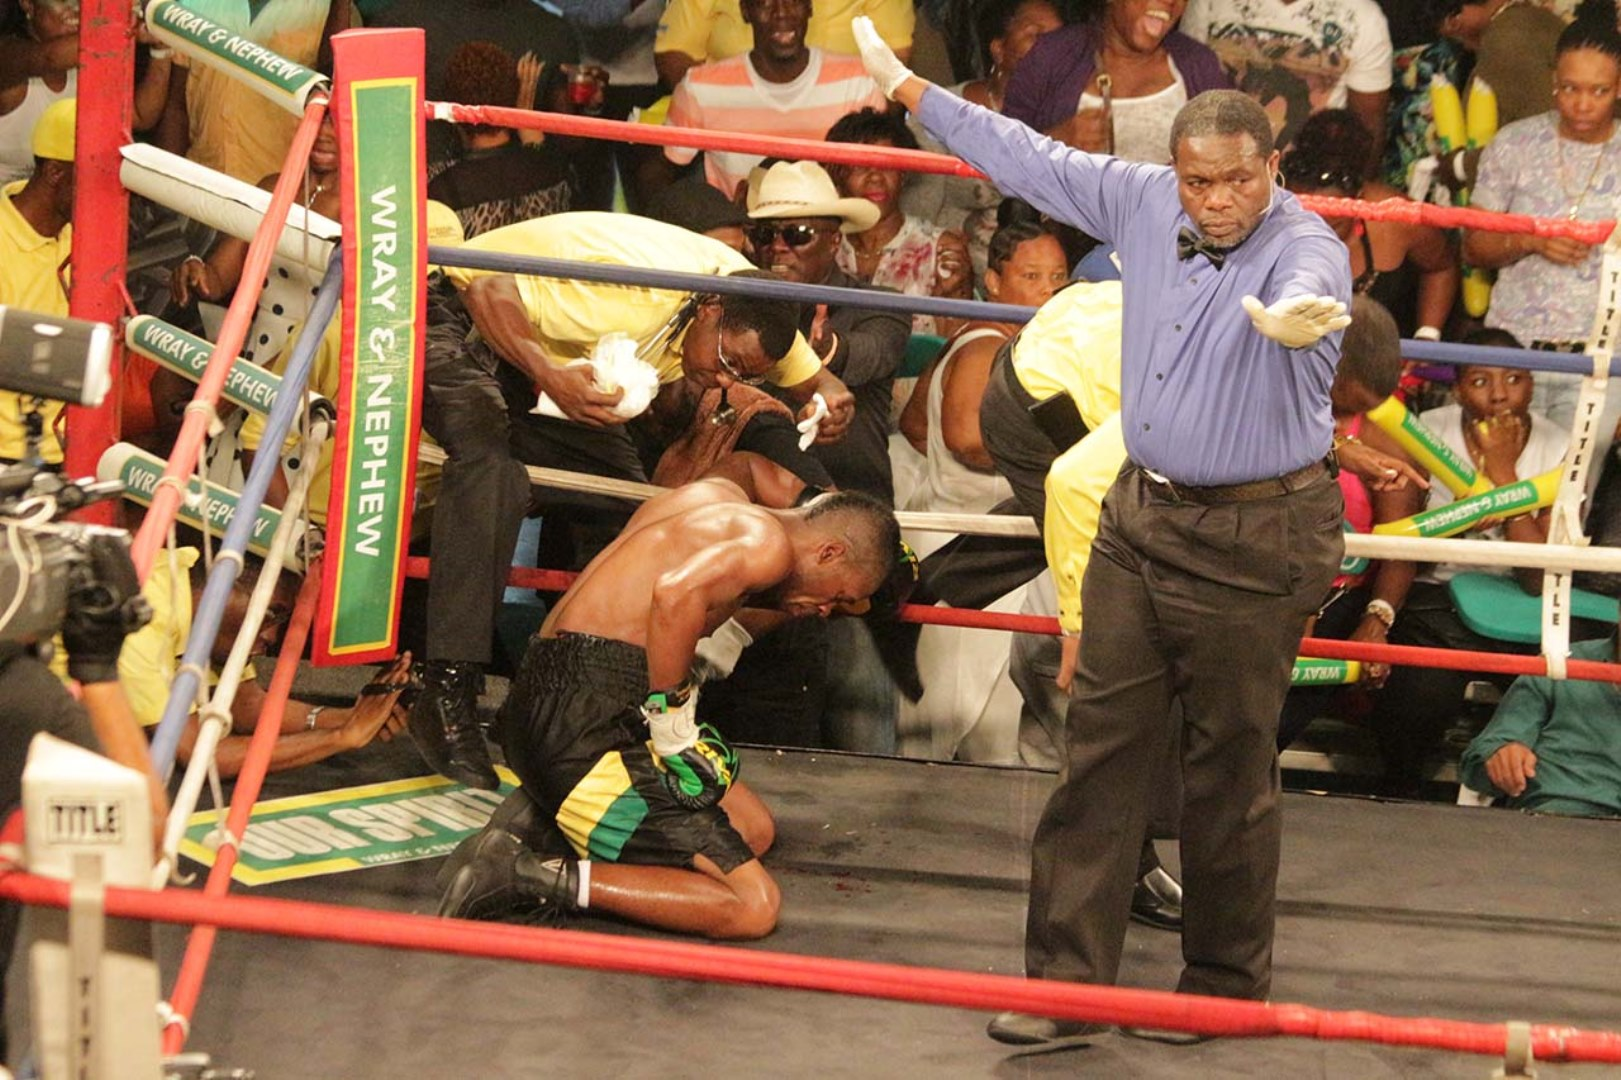 The referee waves off the fight with Jamaican Gregory Miller on his knees after he was knocked to the canvas by Canadian Francesco Cotroni in the third round of their 2017 Wray and Nephew Contender Boxing Series bout on Wednesday night at the Chinese Benevolent Association.